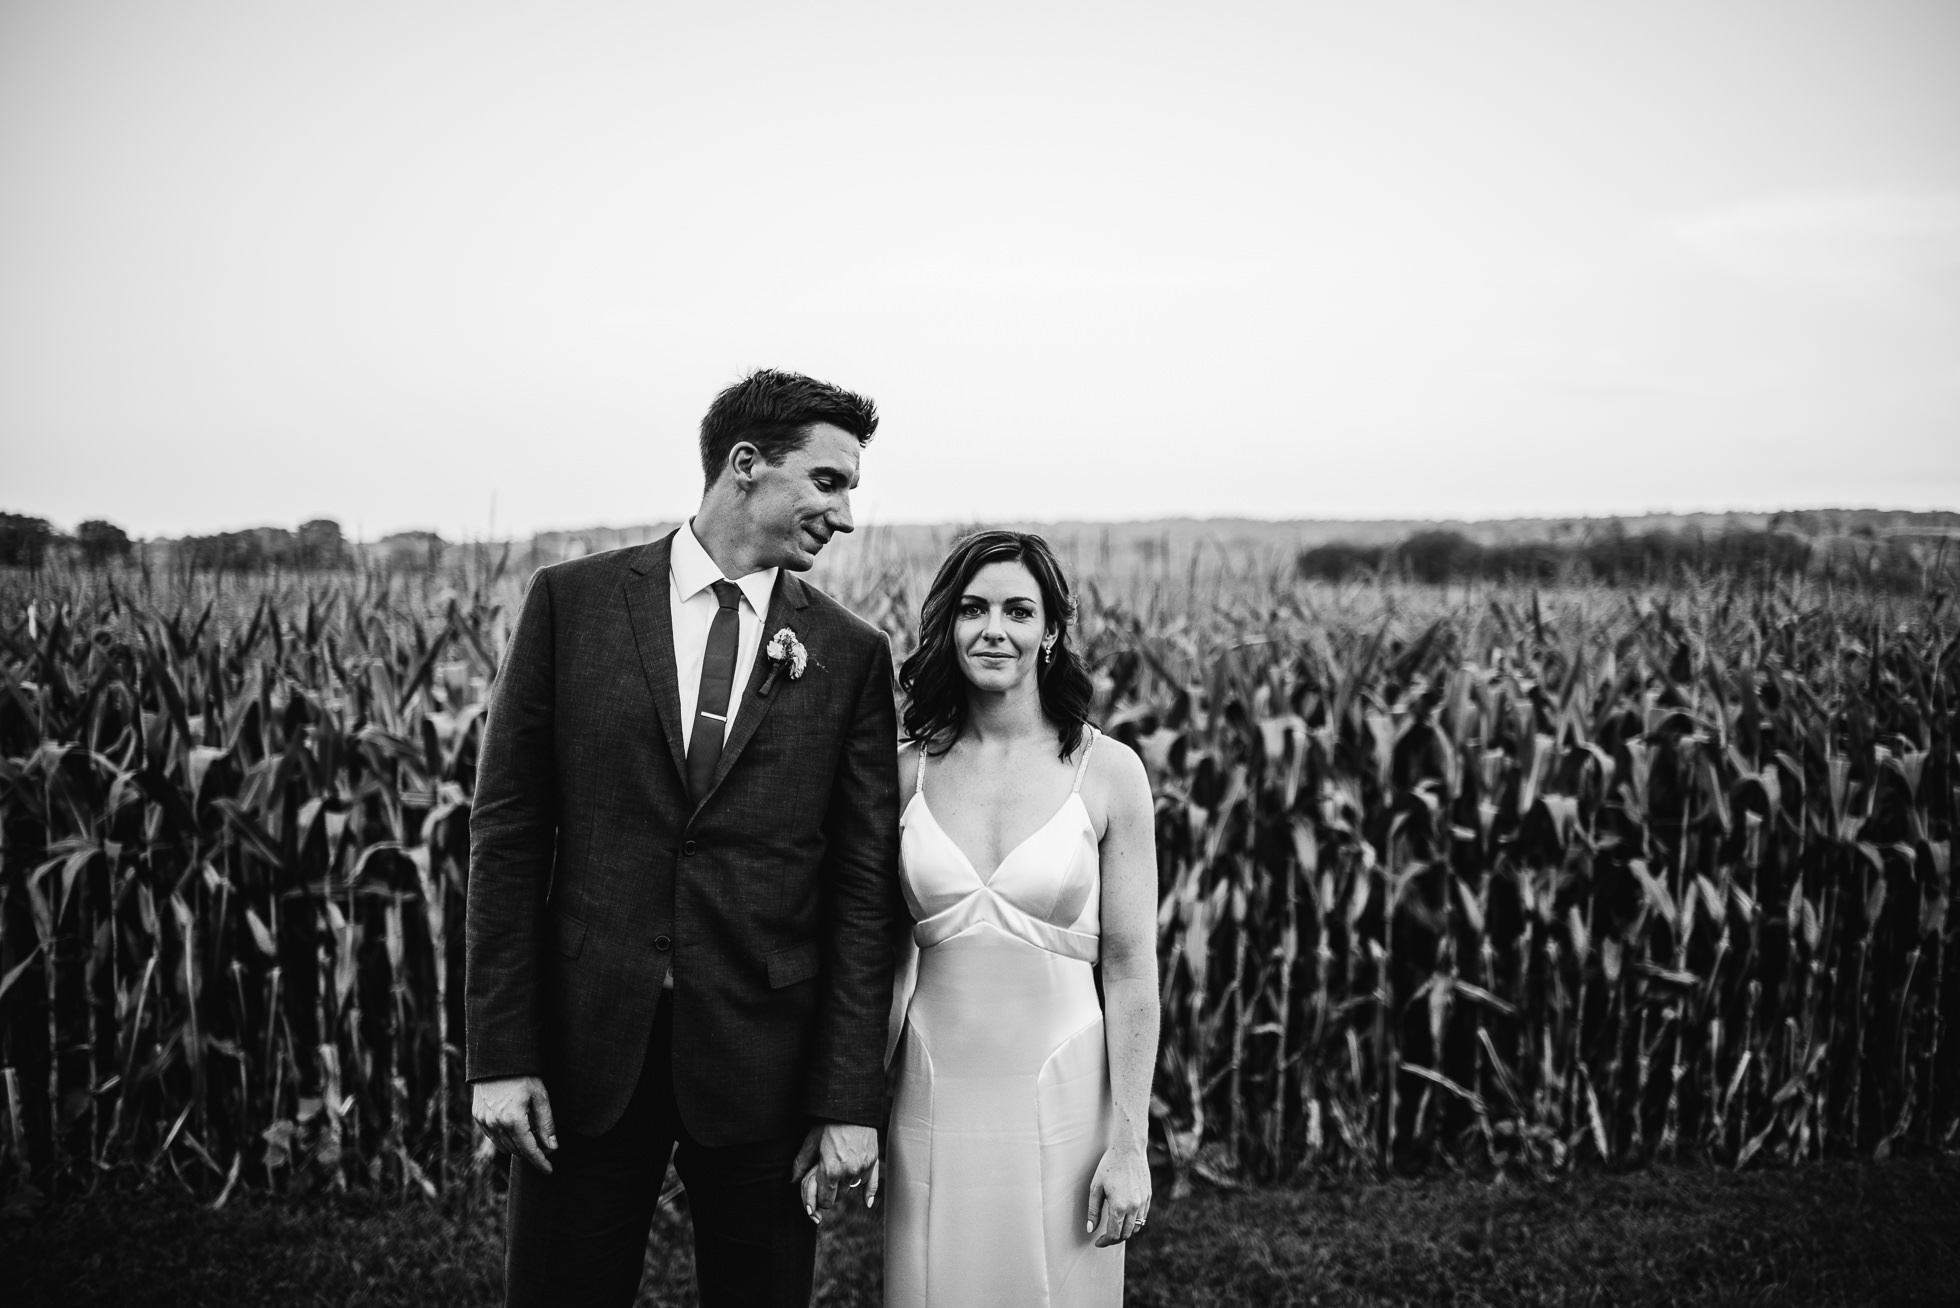 black and white wedding portait near corn field at olde tater barn wedding in central bridge, ny photographed by traverse the tides